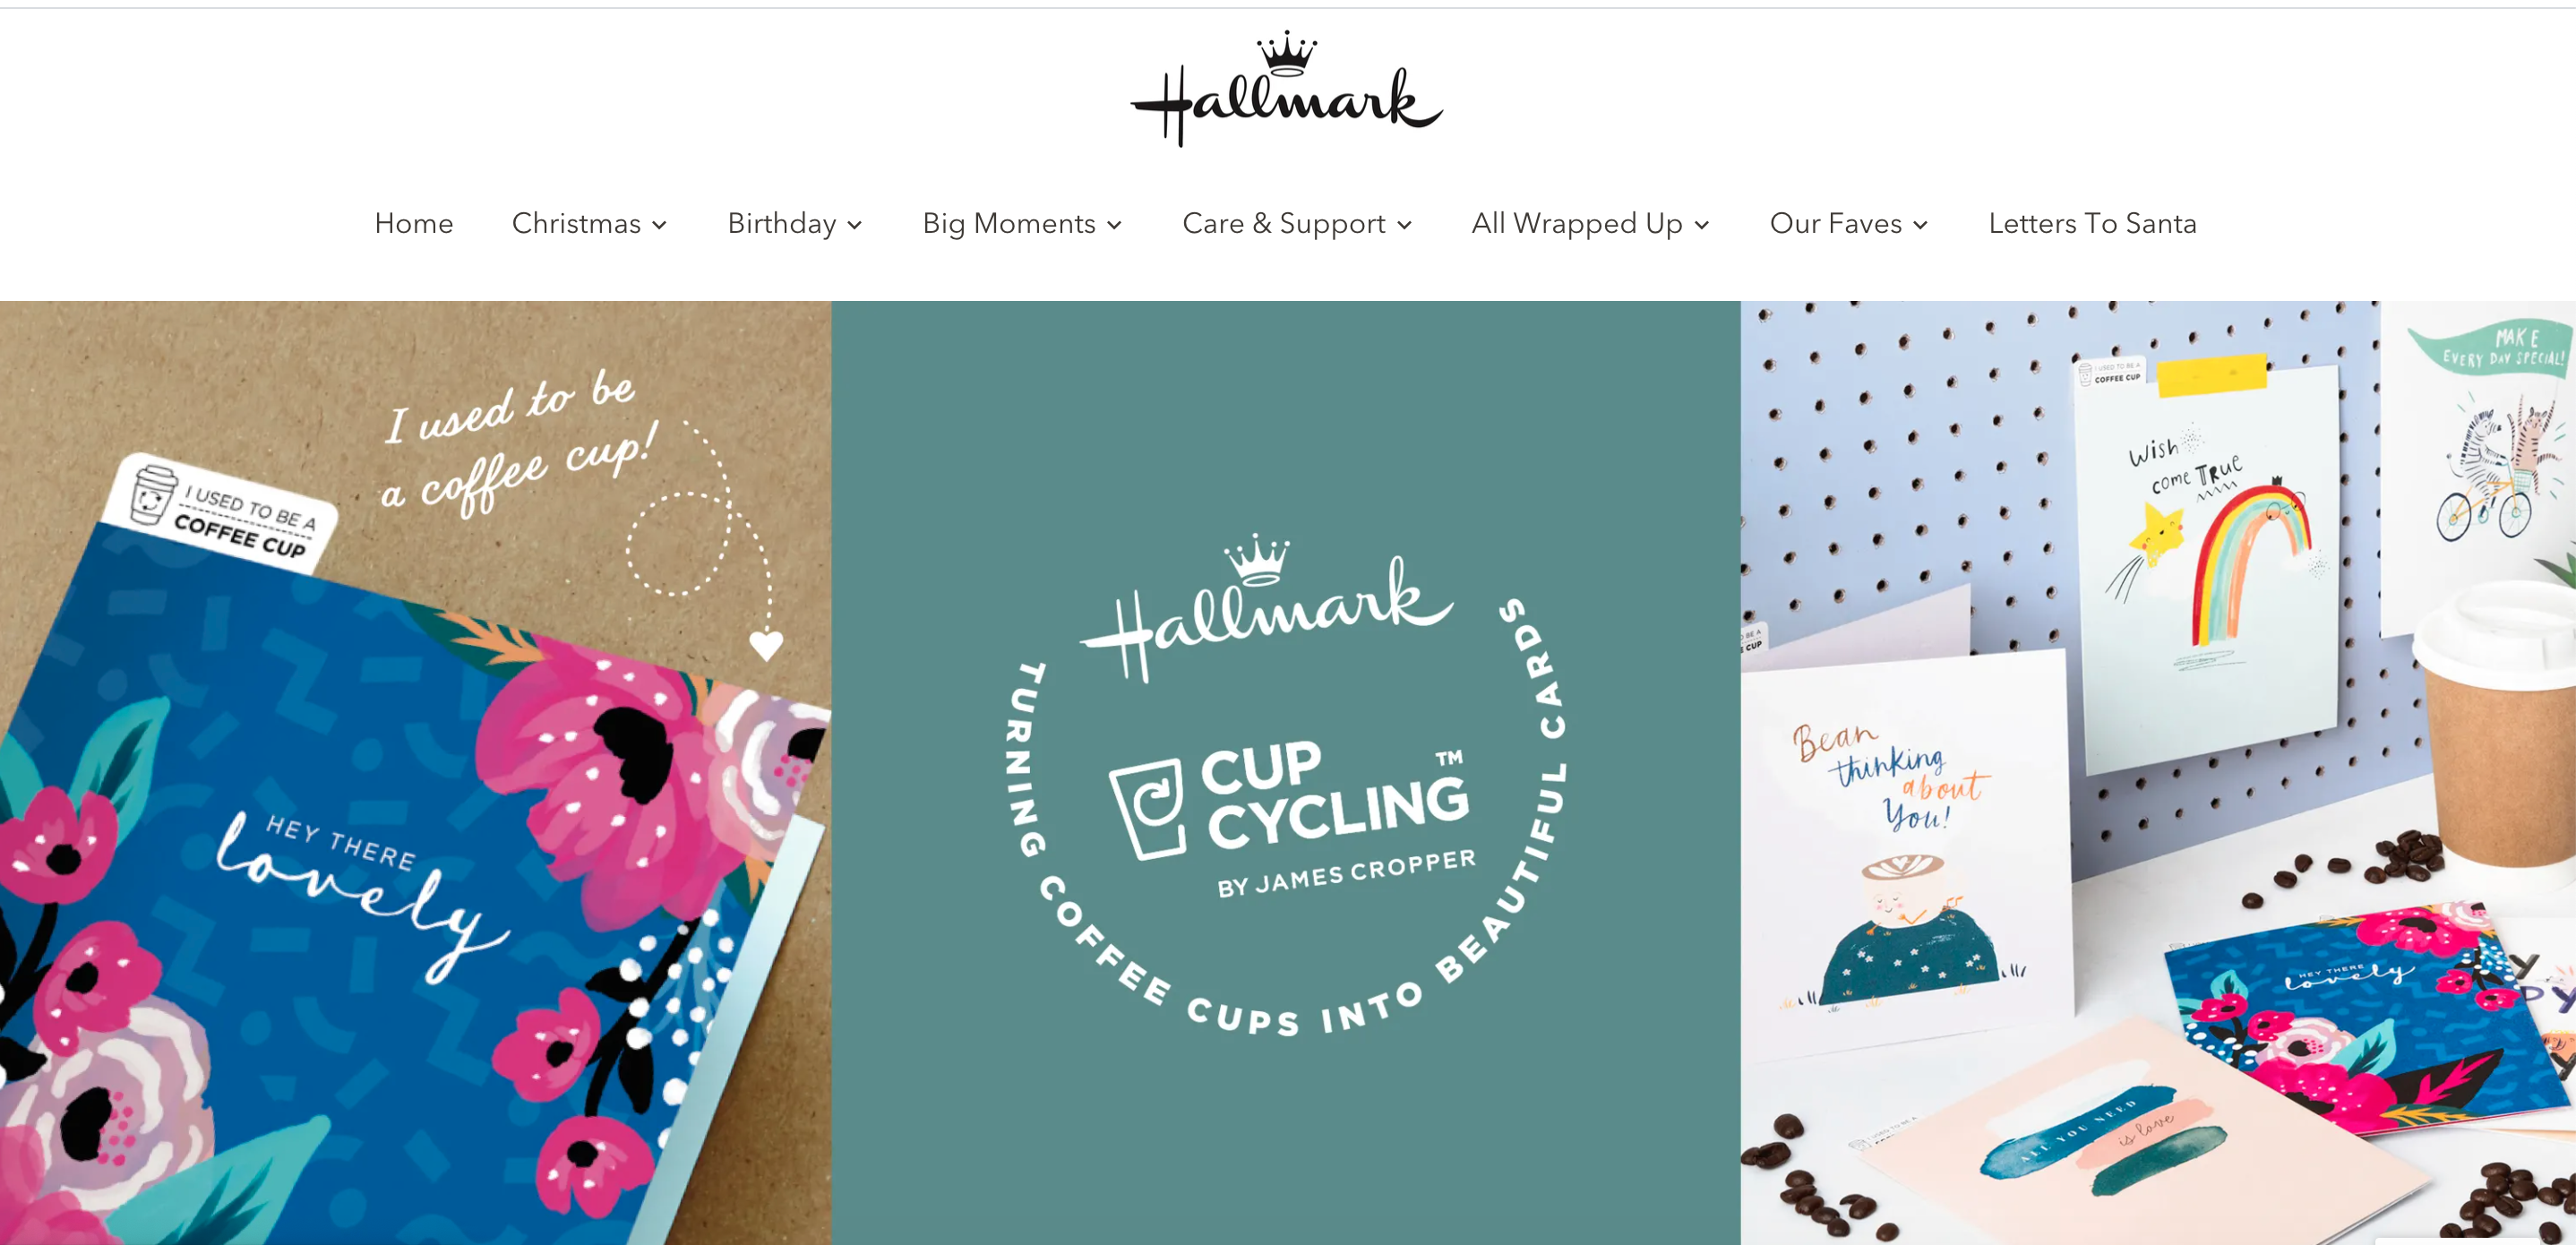 Above: The new website promotes specific ranges, such as the Cup Cycling range as well as allowing consumers to select by sending caption.